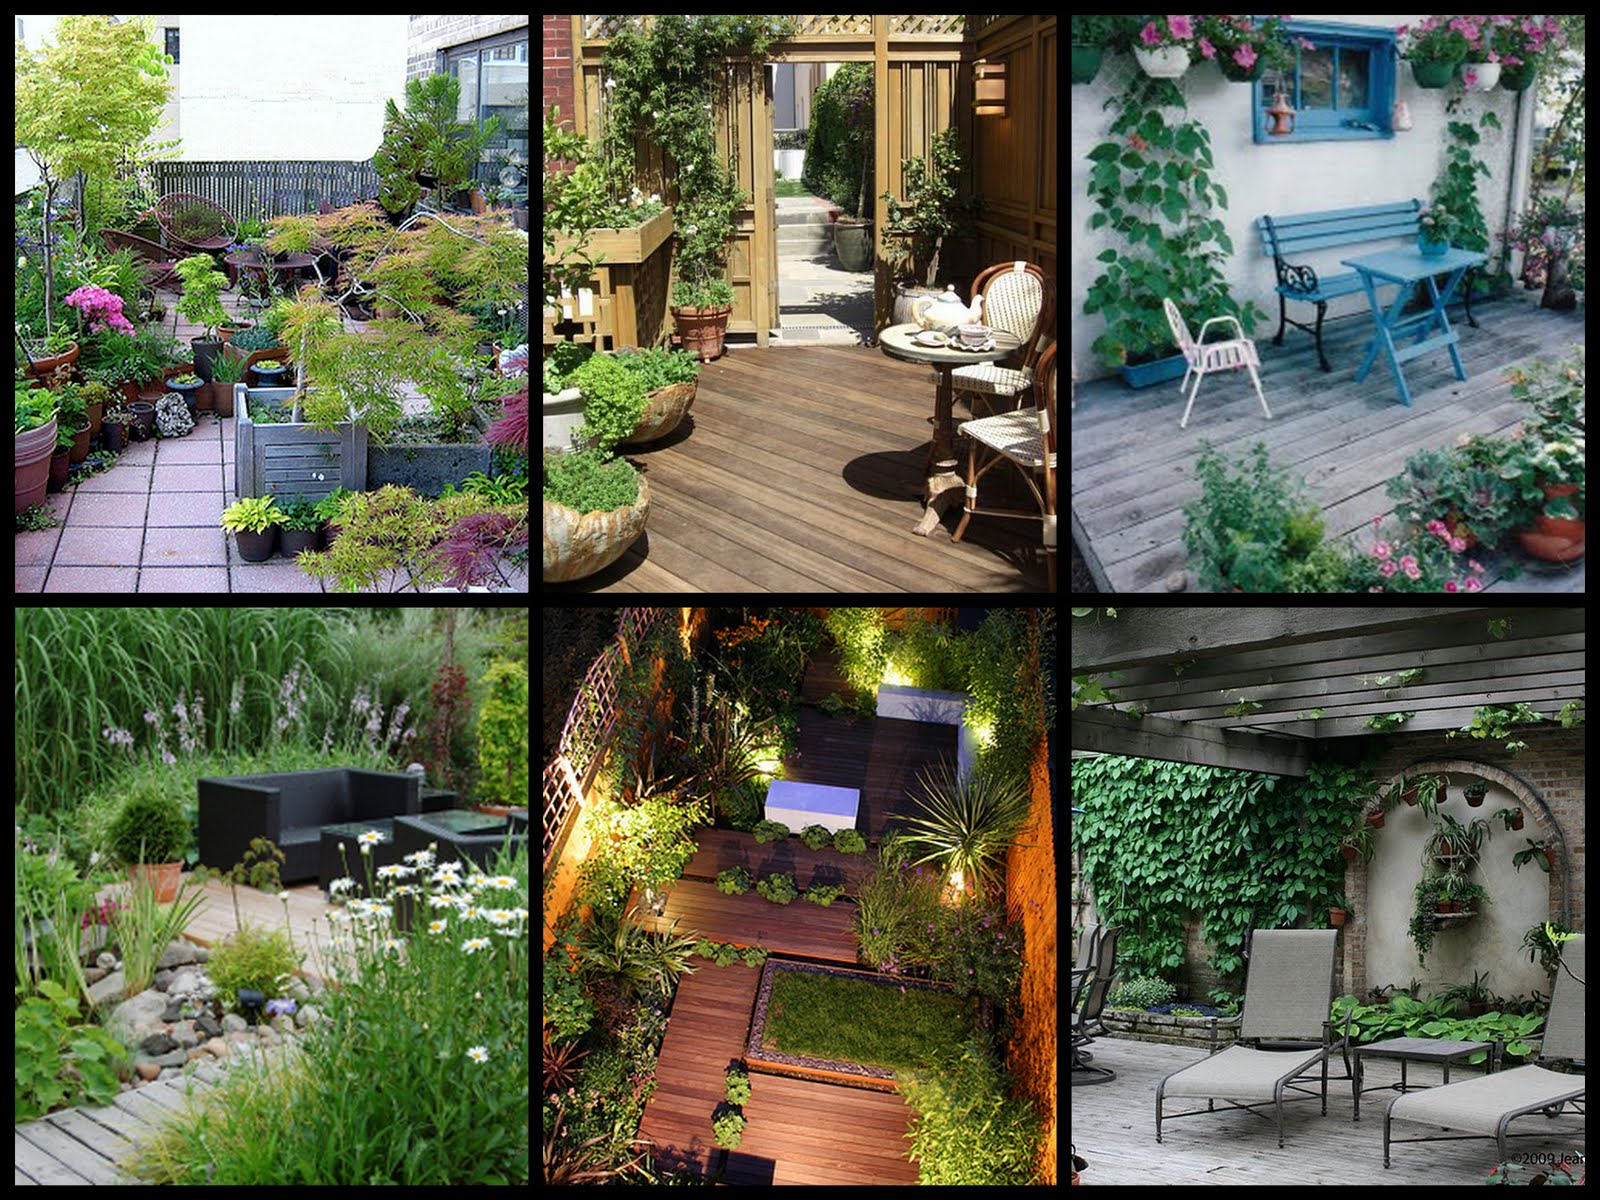 8 Small Gardens That Will Inspire You In Any Season: Just Another Girl's Blog: Patio And Veranda Gardens. . .I